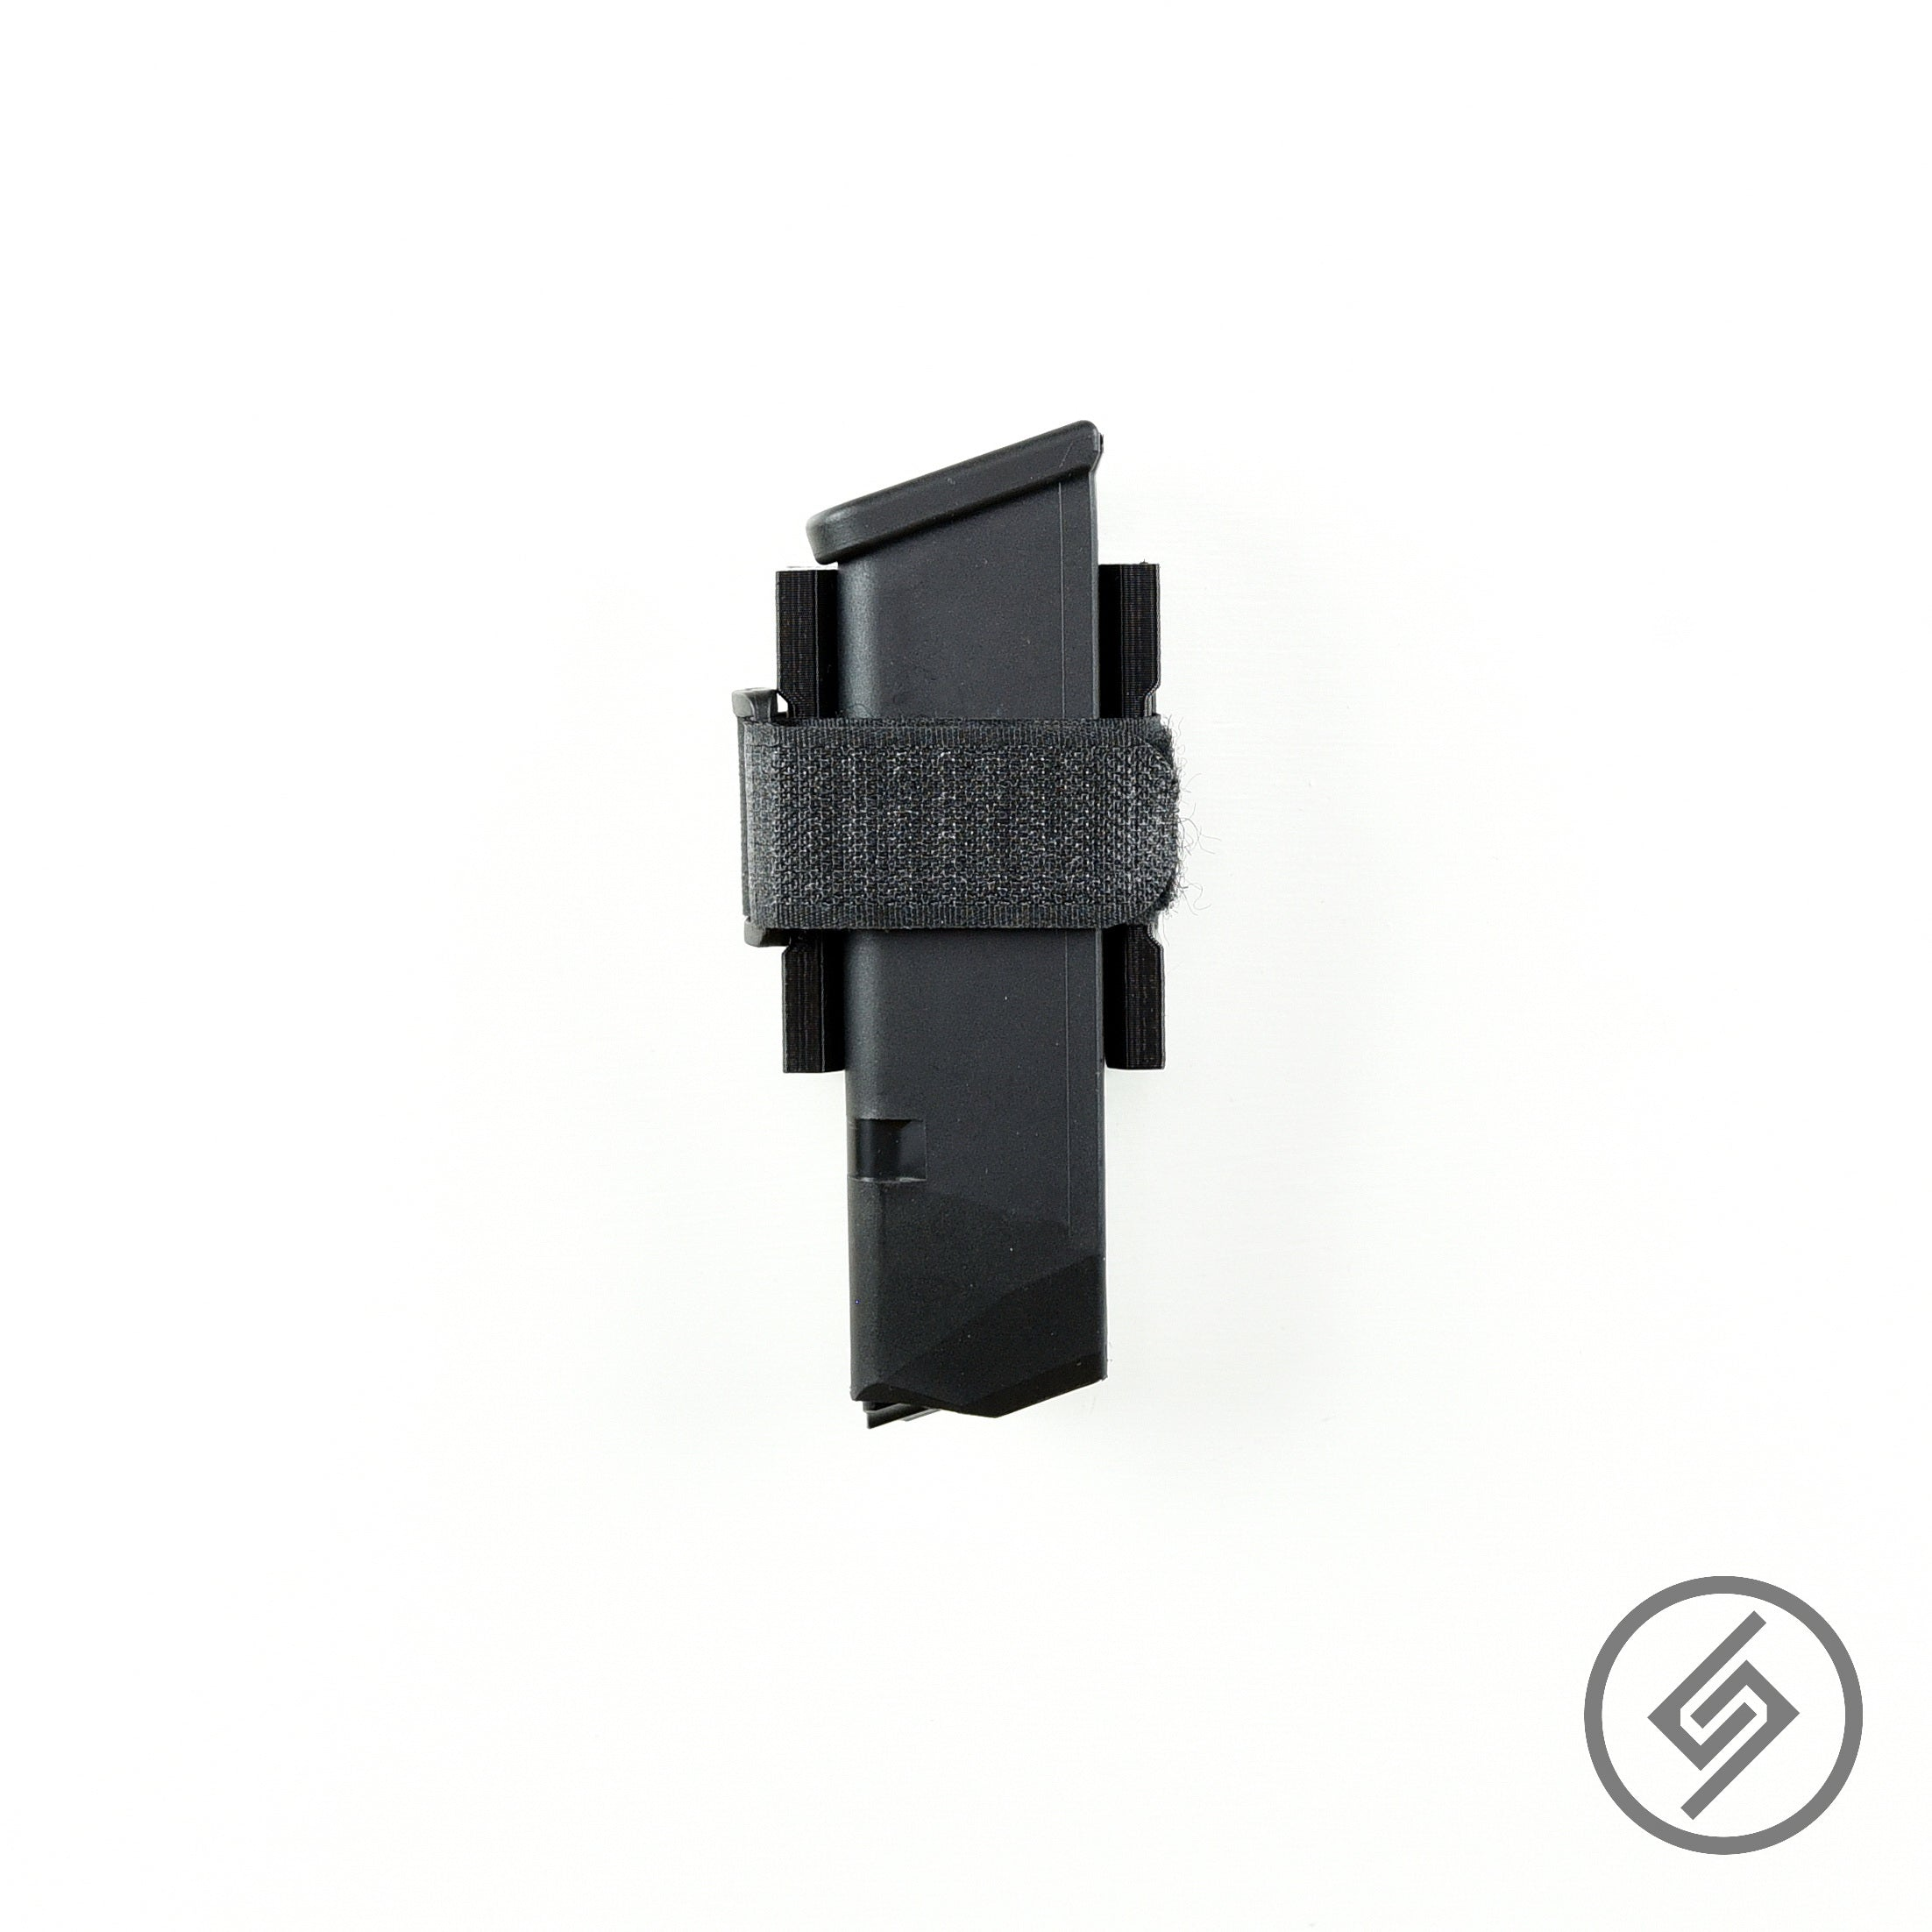 Velcro Wall Mount for Glock Magazine, Spartan Mounts